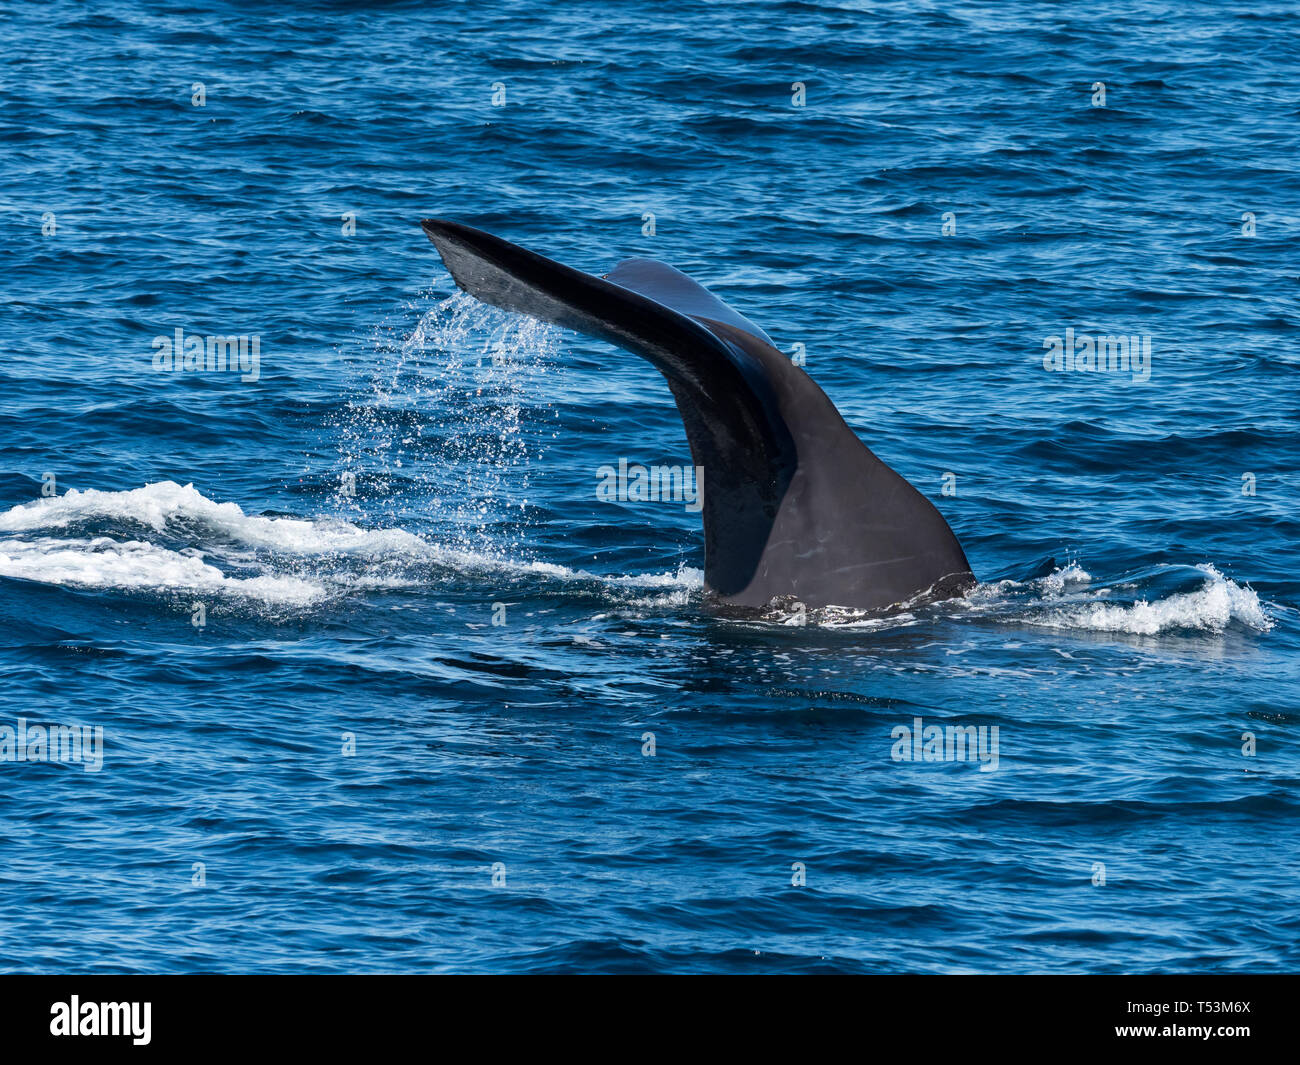 A sperm whale, Physeter macrocephalus, largest toothed whale, showing its tail flukes as it dives deep in the sea of Cortez in Baja, Mexico Stock Photo